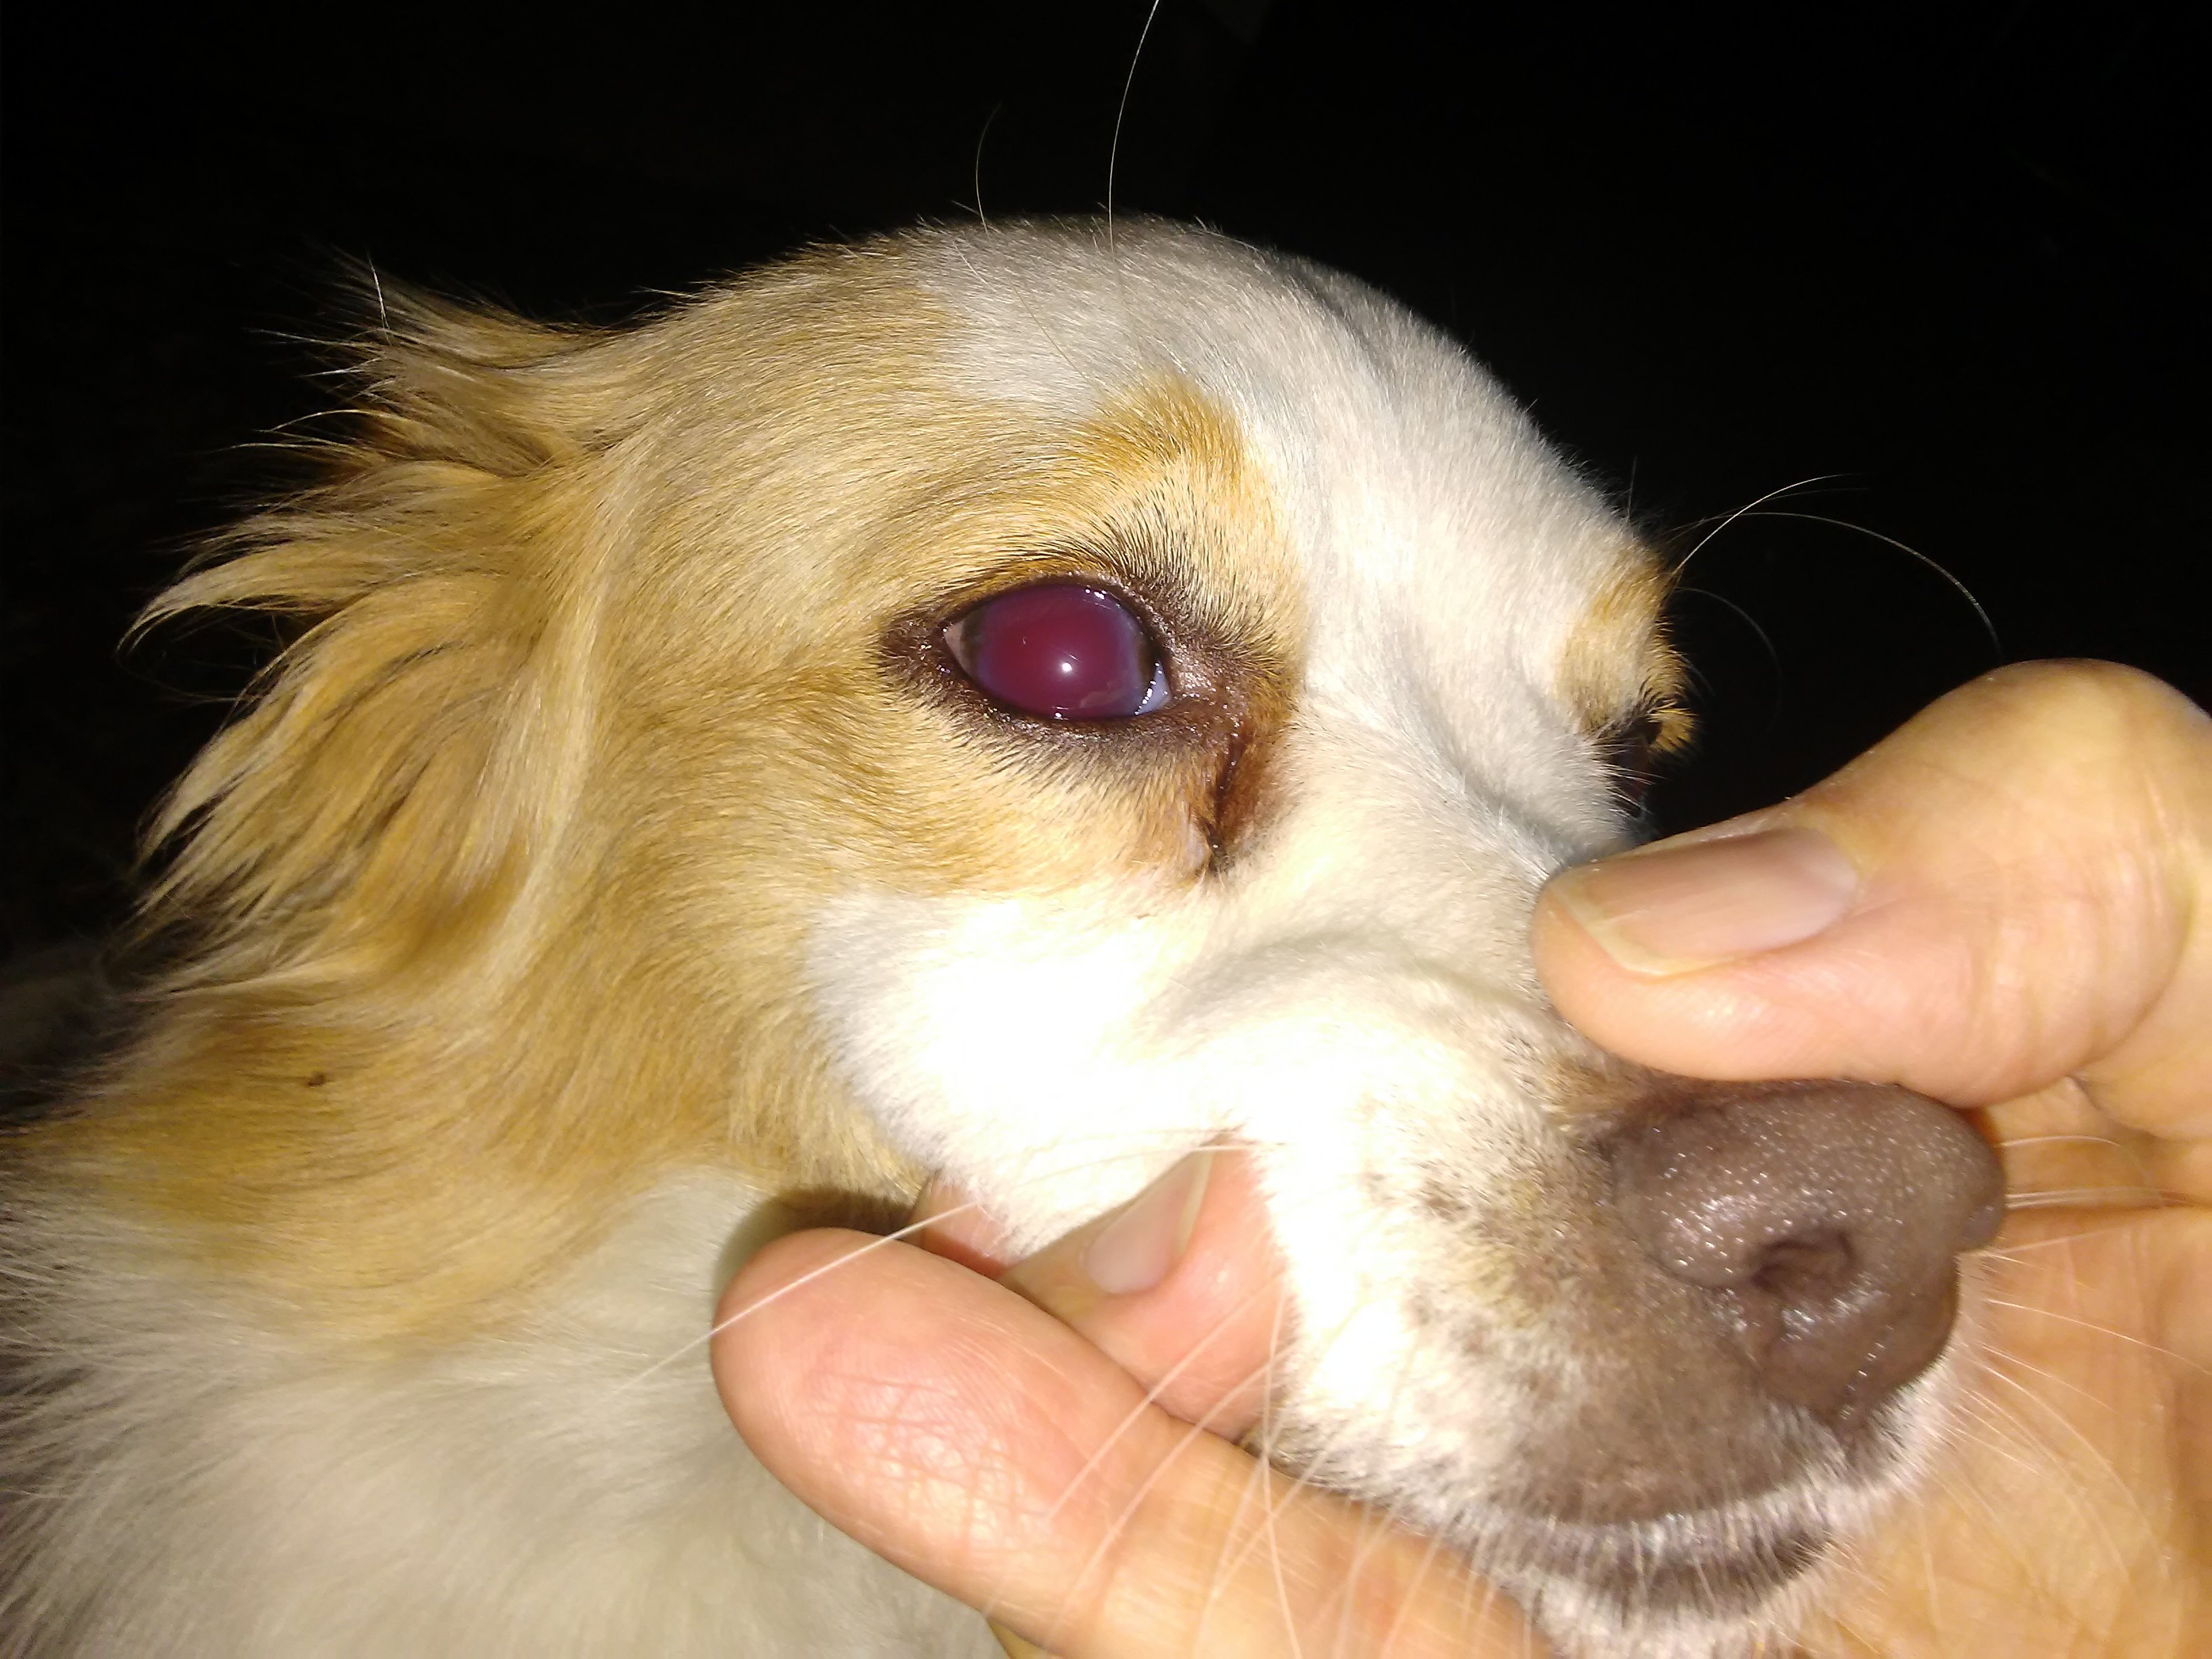 dogs eye is red